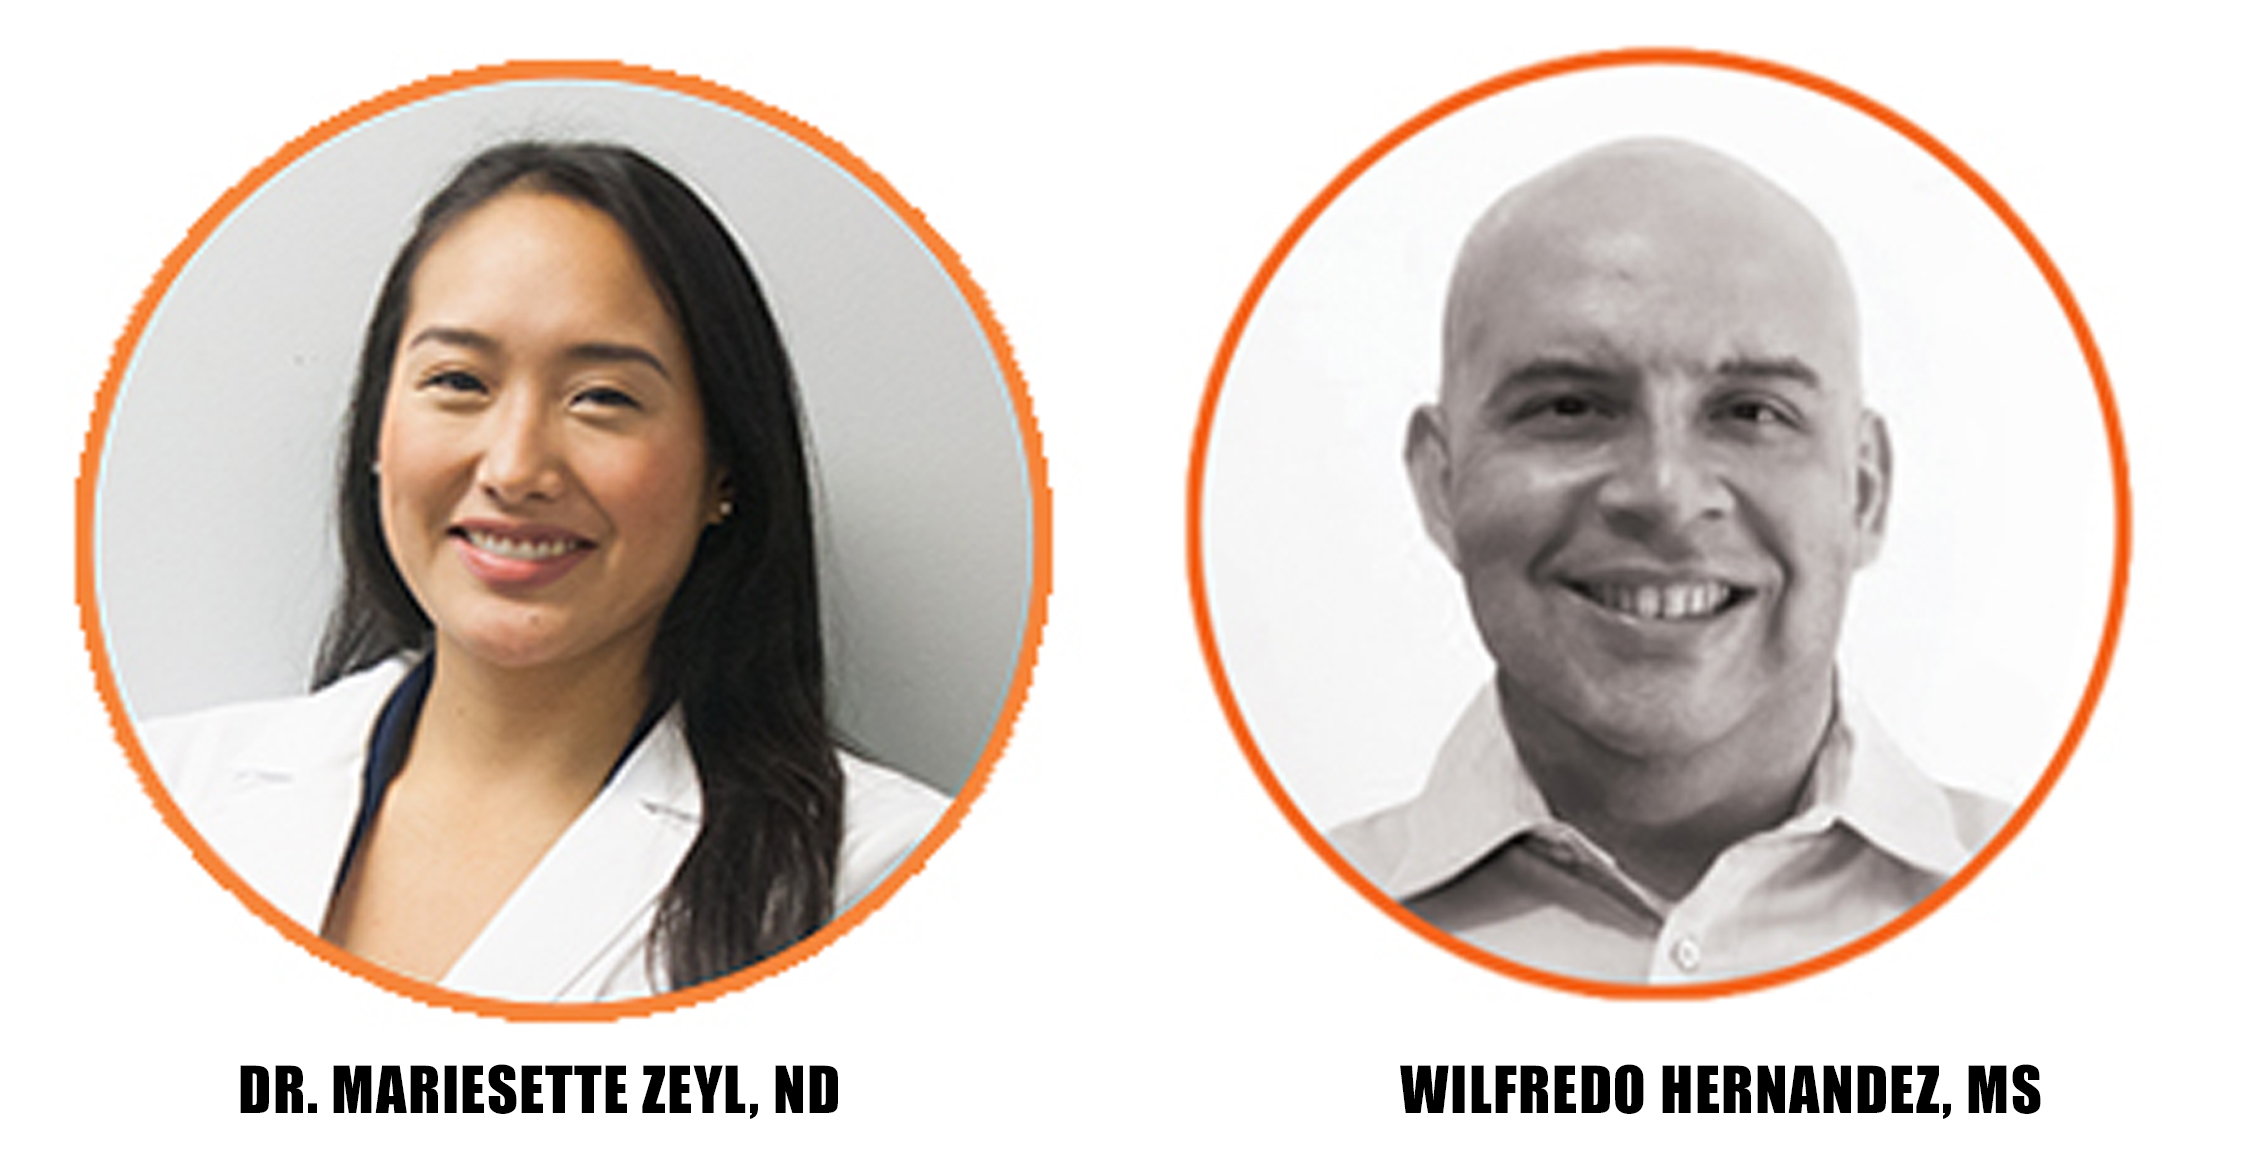 Welcoming Two New Members to the InVite® Team!